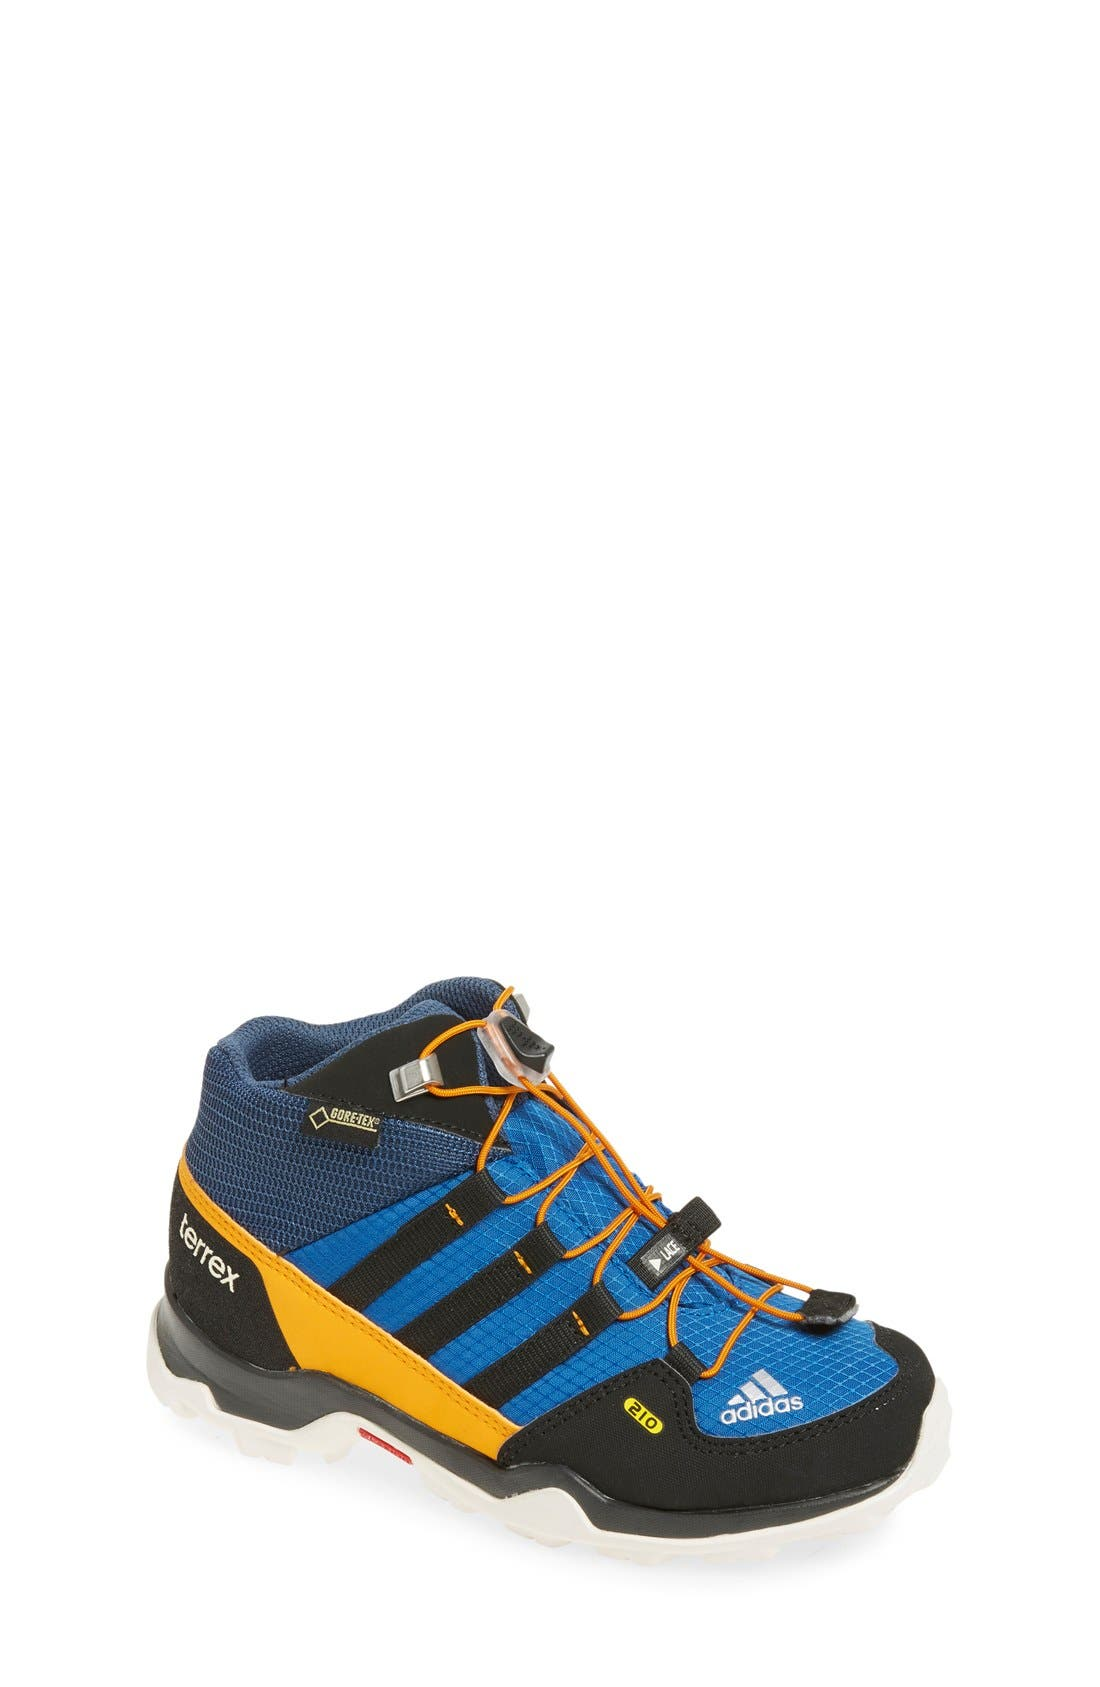 Alternate Image 1 Selected - adidas 'Terrex Mid Gore-Tex' Hiking Shoe (Toddler, Little Kid & Big Kid)